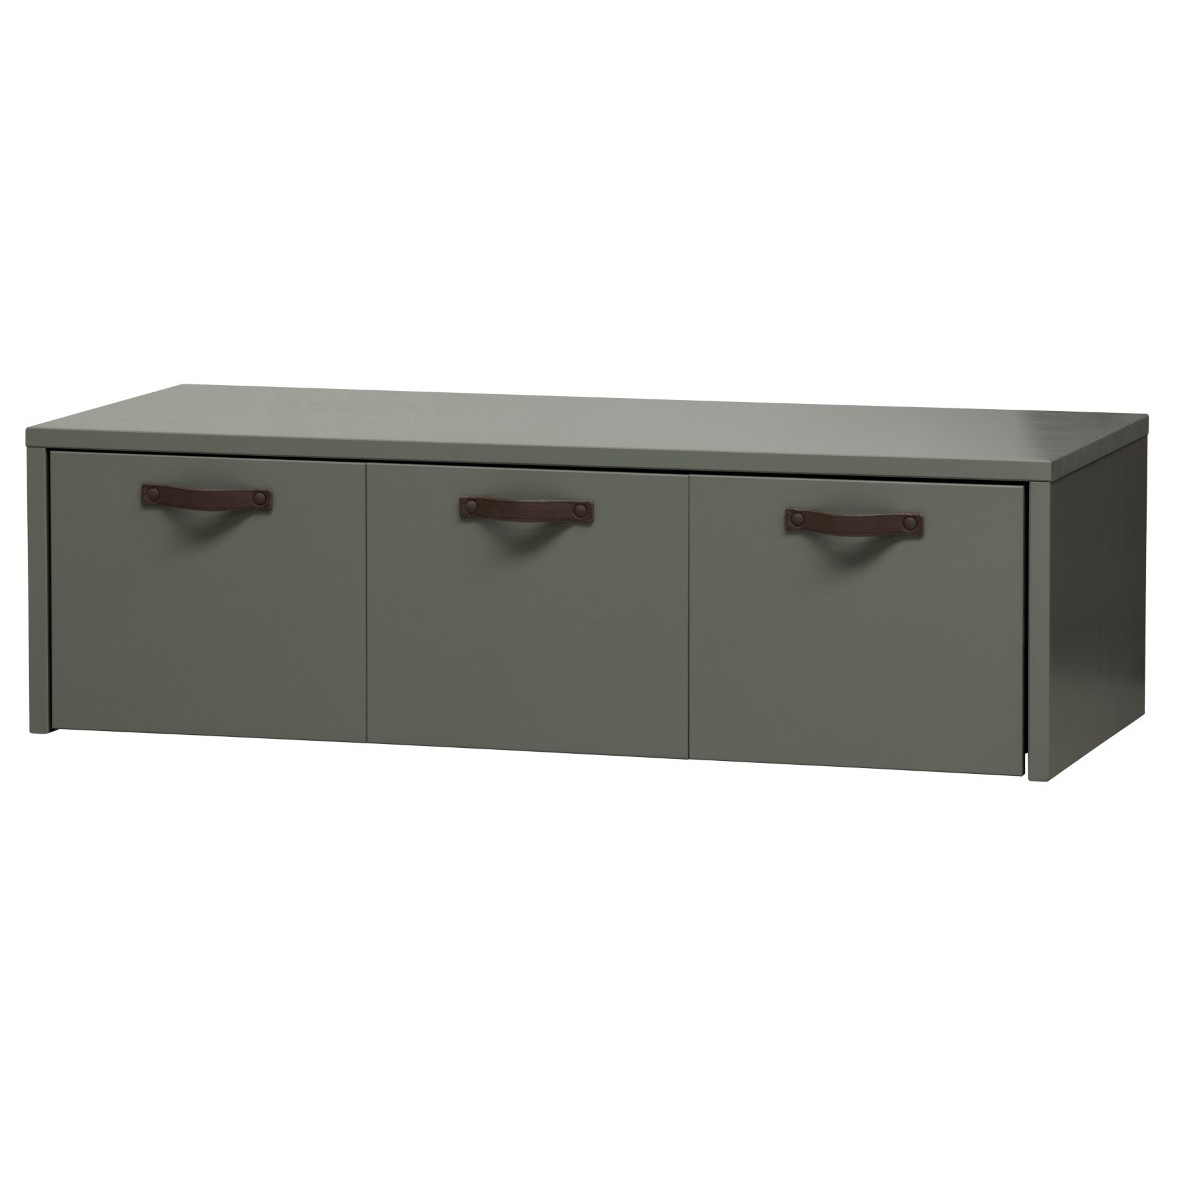 Bench with Storage Room